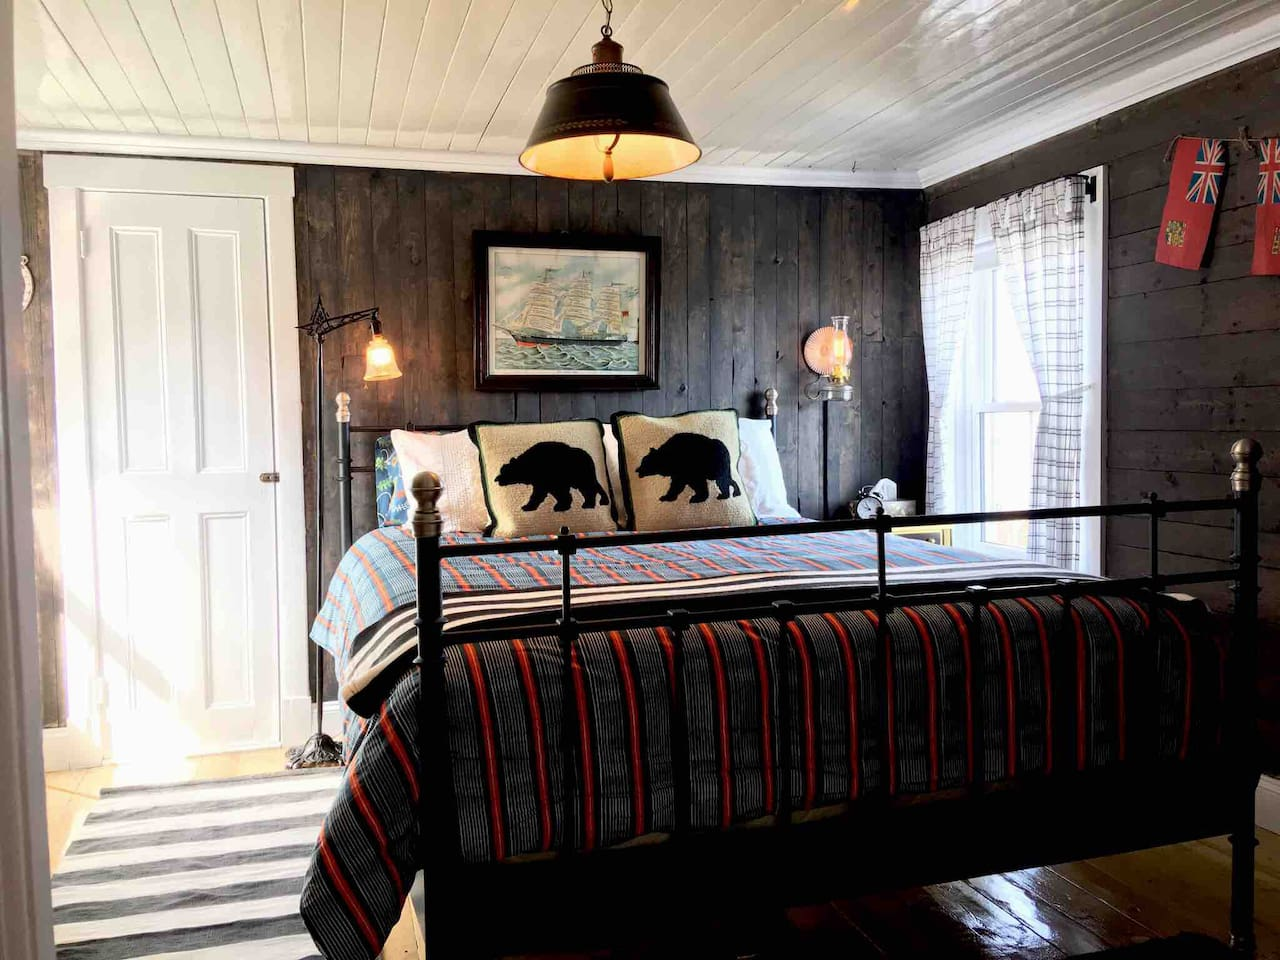 The Captain's Suite, the master bedroom with a queen sized bed, ensuite powder room and a view of the bay